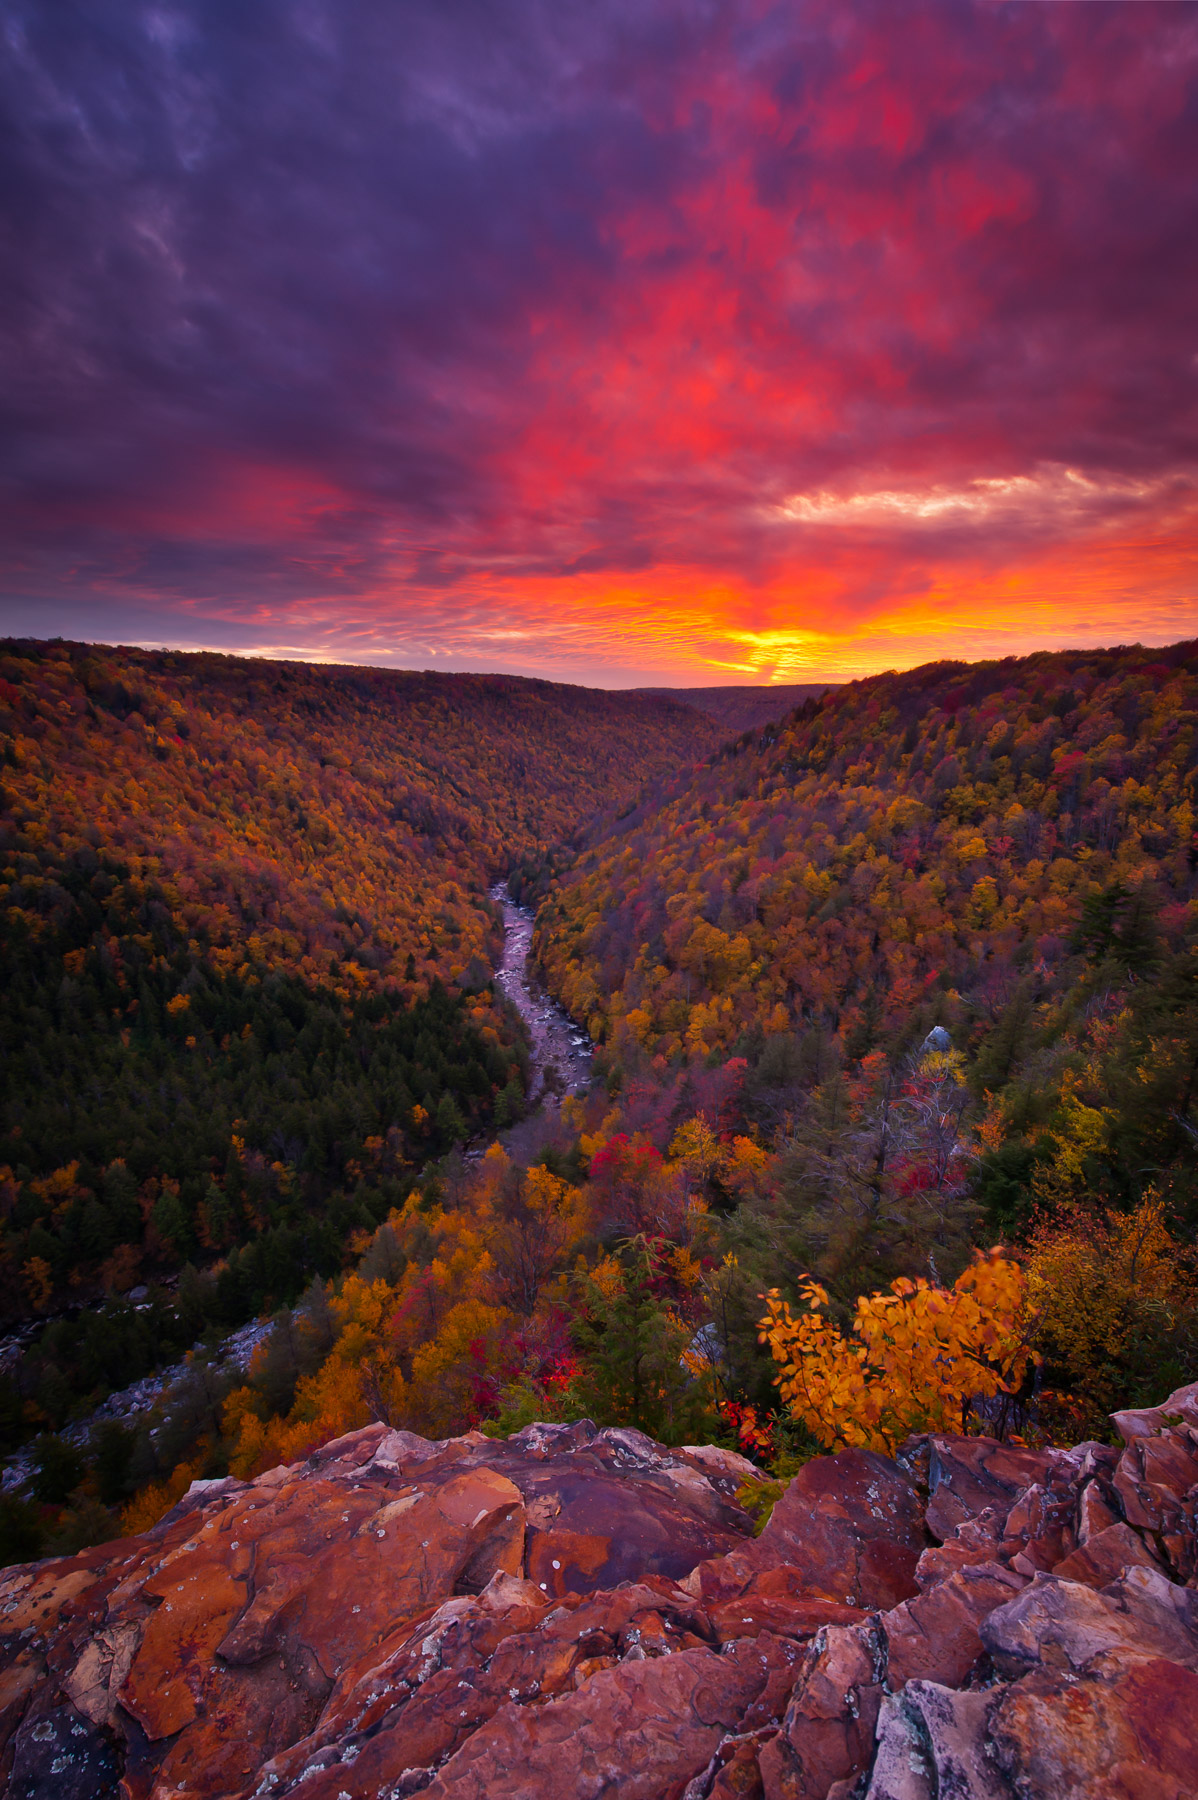 A fiery October sunset captured over Blackwater Canyon in the Allegheny Mountains of West Virginia. Available Print Sizes: 12x18...